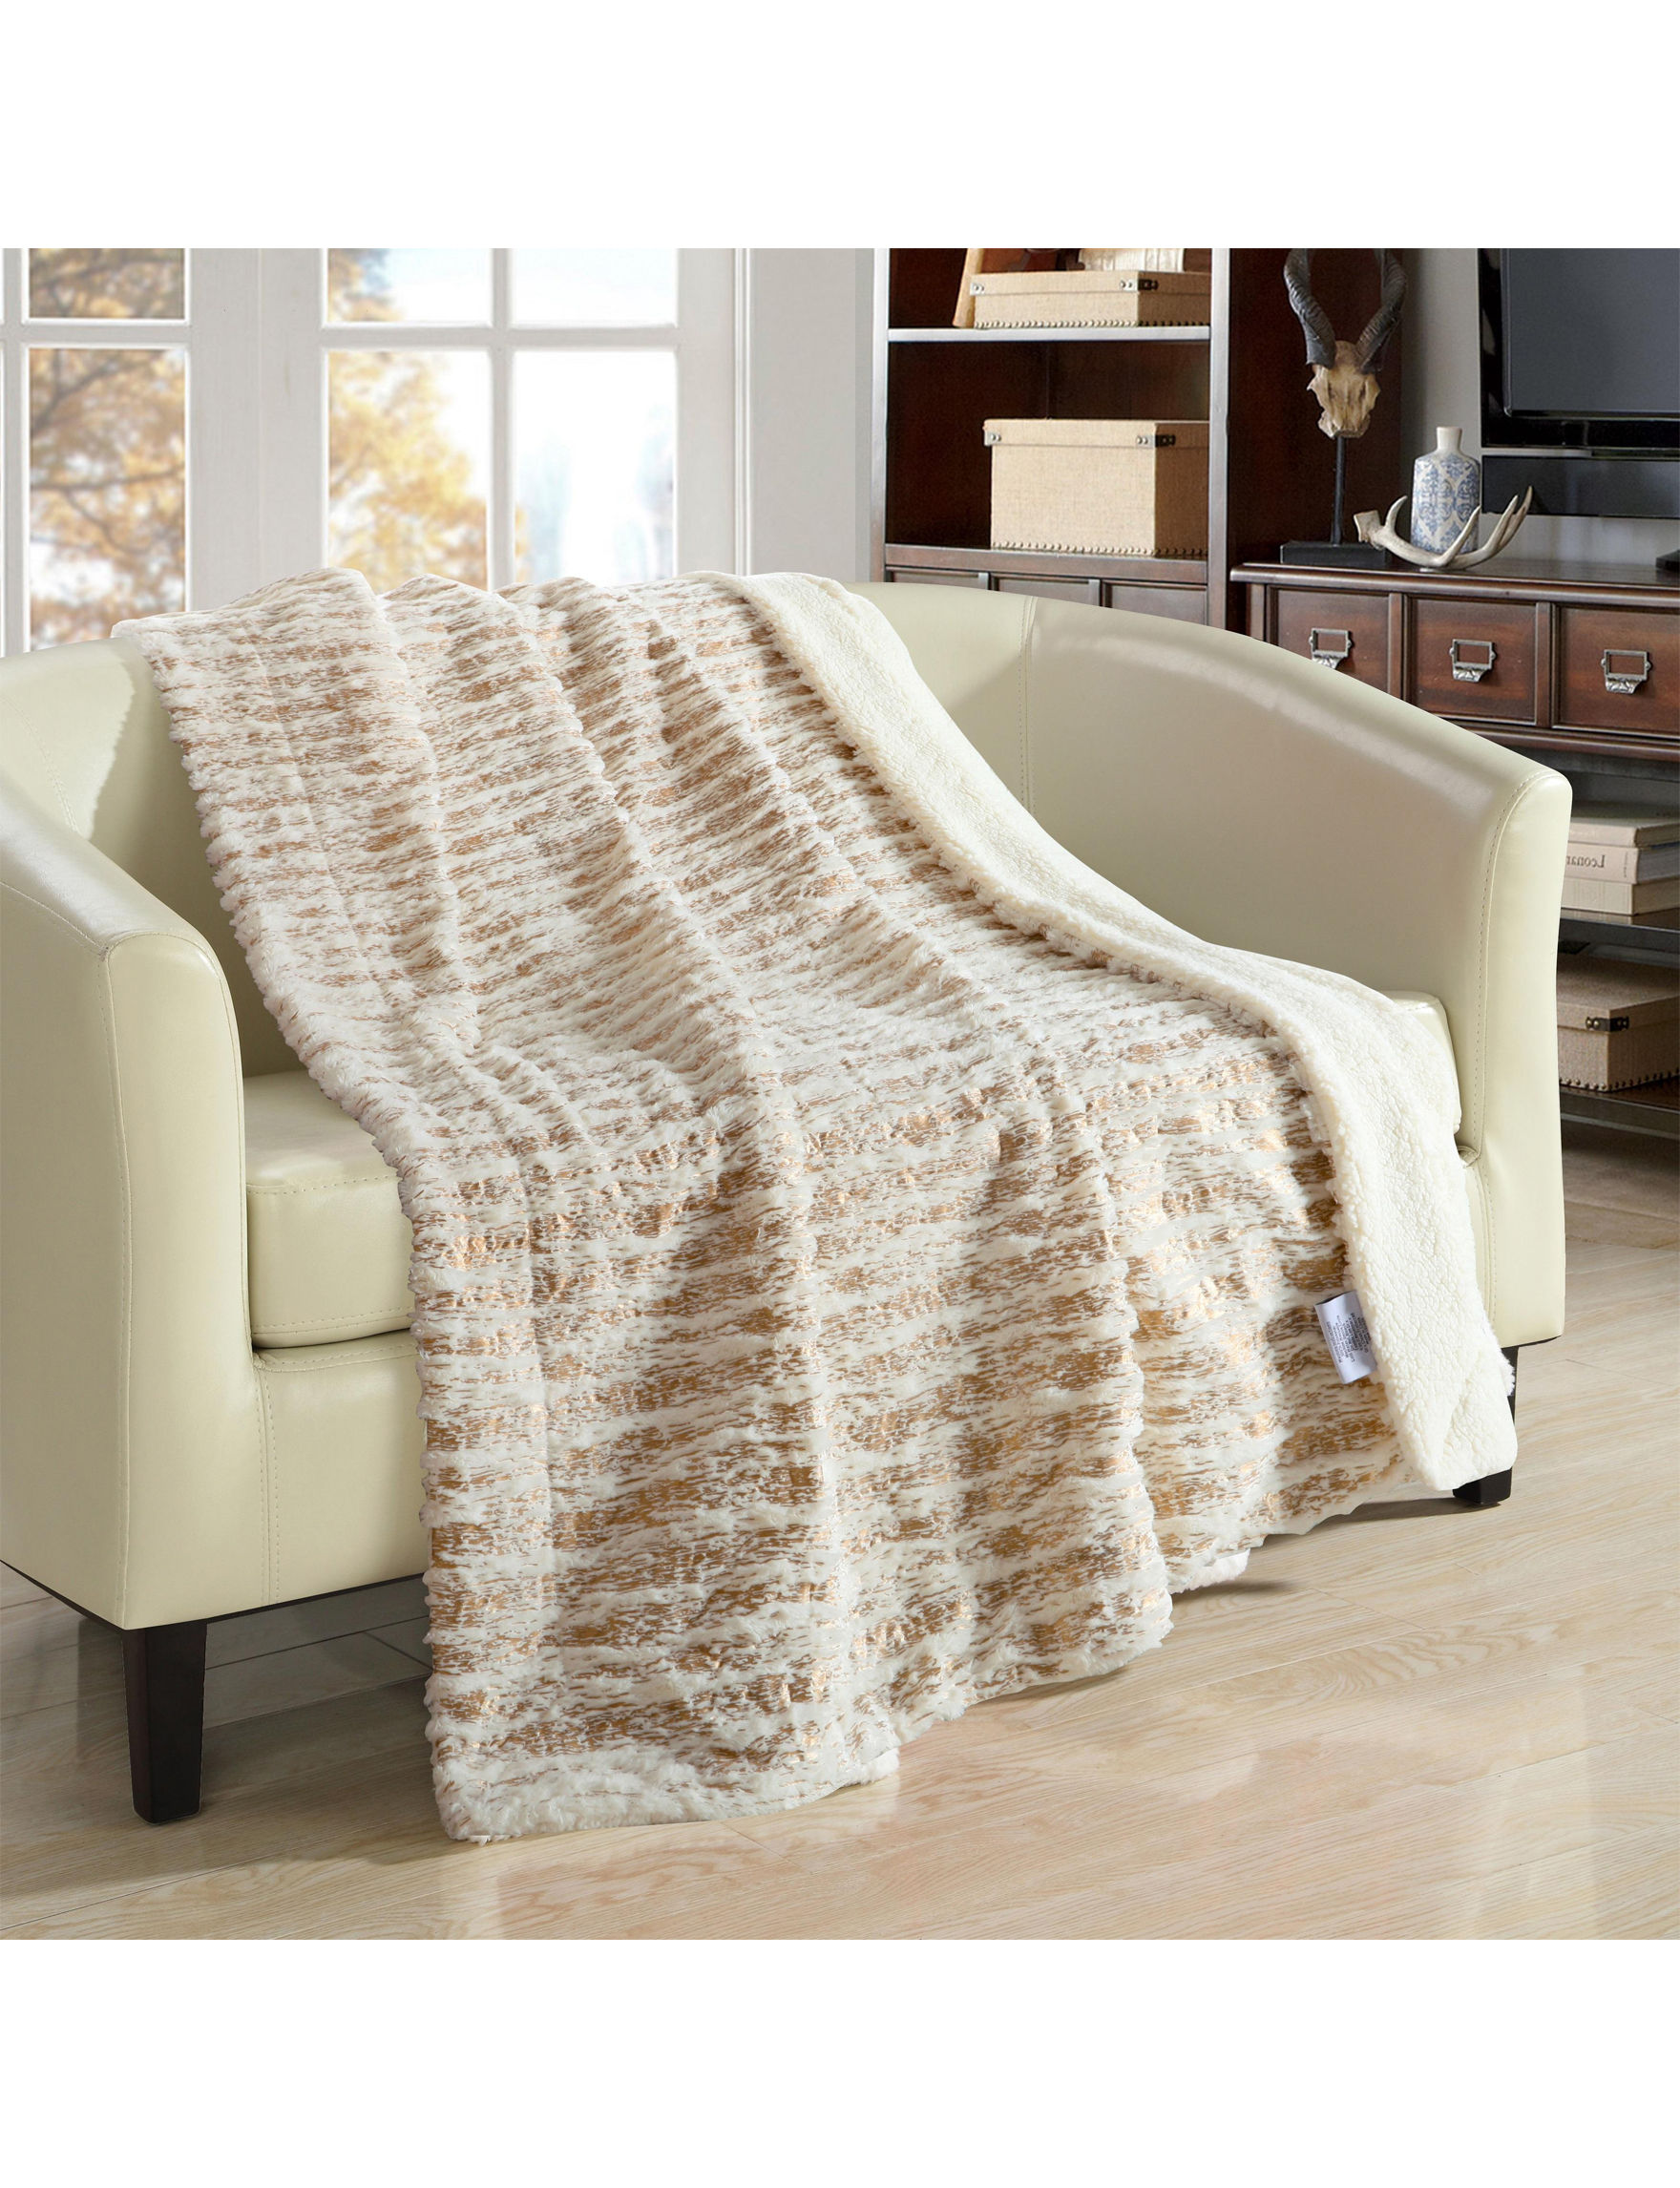 Chic Home Design Beige Blankets & Throws